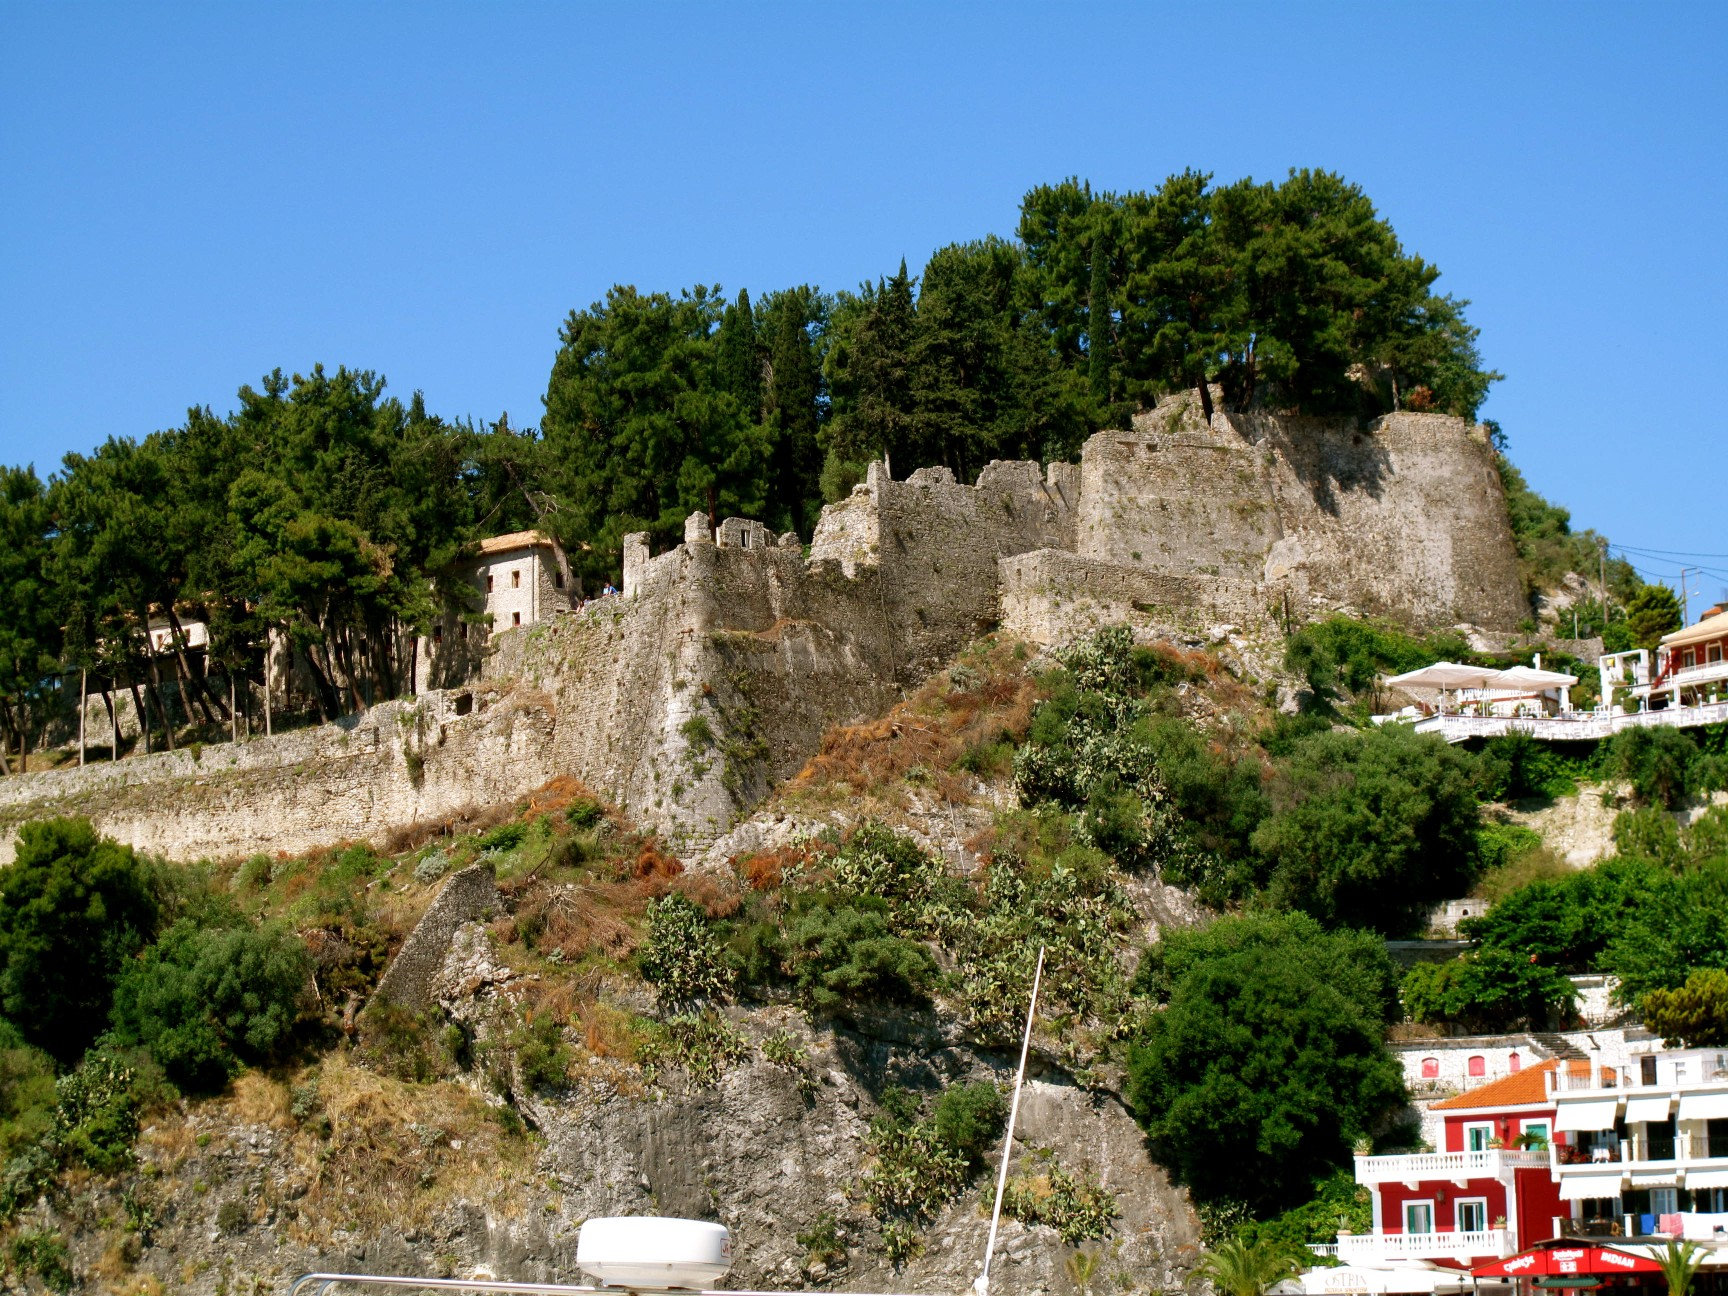 Parga, Greece - Monterrasol small group tours to Parga, Greece. Travel agency offers small group car tours to see Parga in Greece. Order small group tour to Parga with departure date on request.